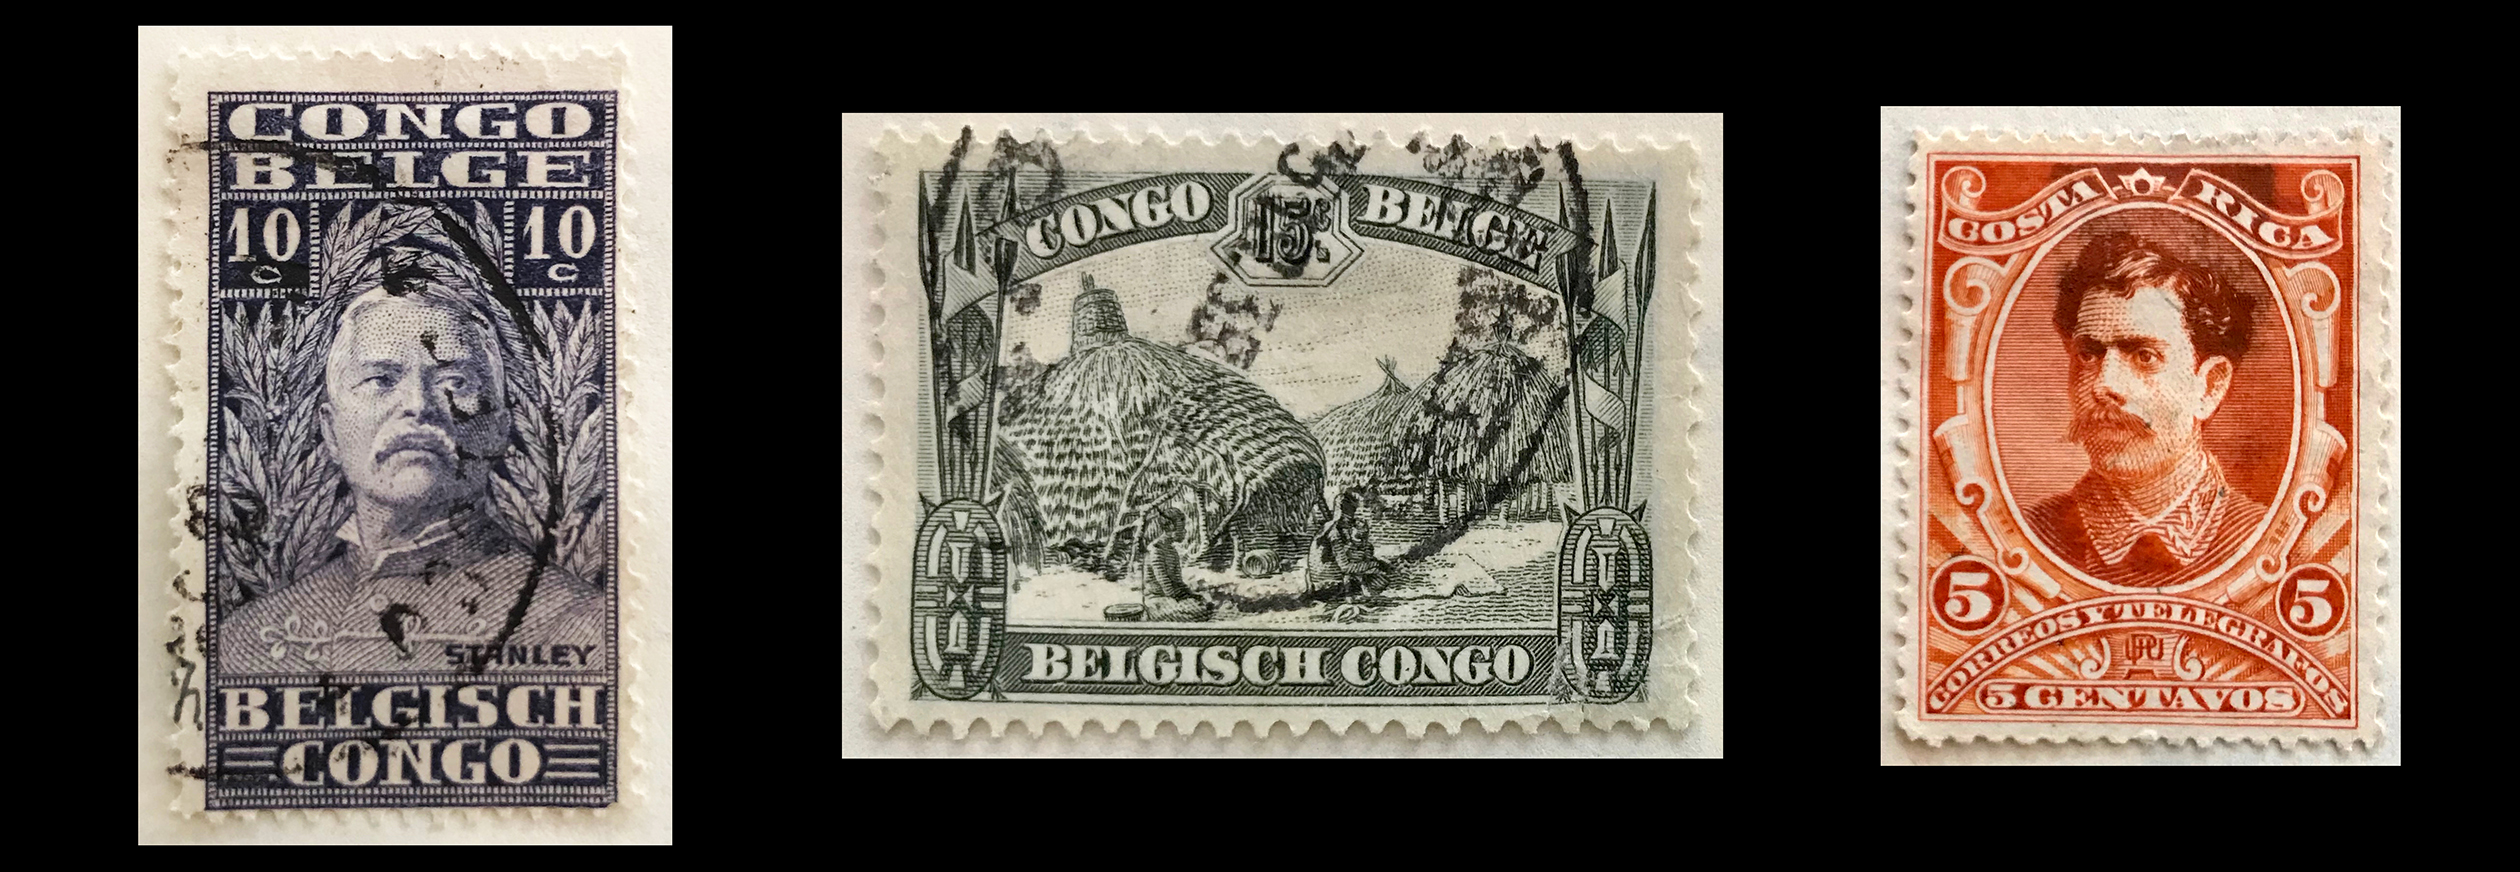 Postage stamps were once engraved in the banknote style, here are three examples: (Left) Sir Henry Morton Stanley famous for his central Africa missionary and explorer David Livingstone. (Middle) 1931 – Kivu kraal, Belgian Congo. (Right) Ca. 1889, Costa Rica, Ramón Bernardo Soto Alfaro.